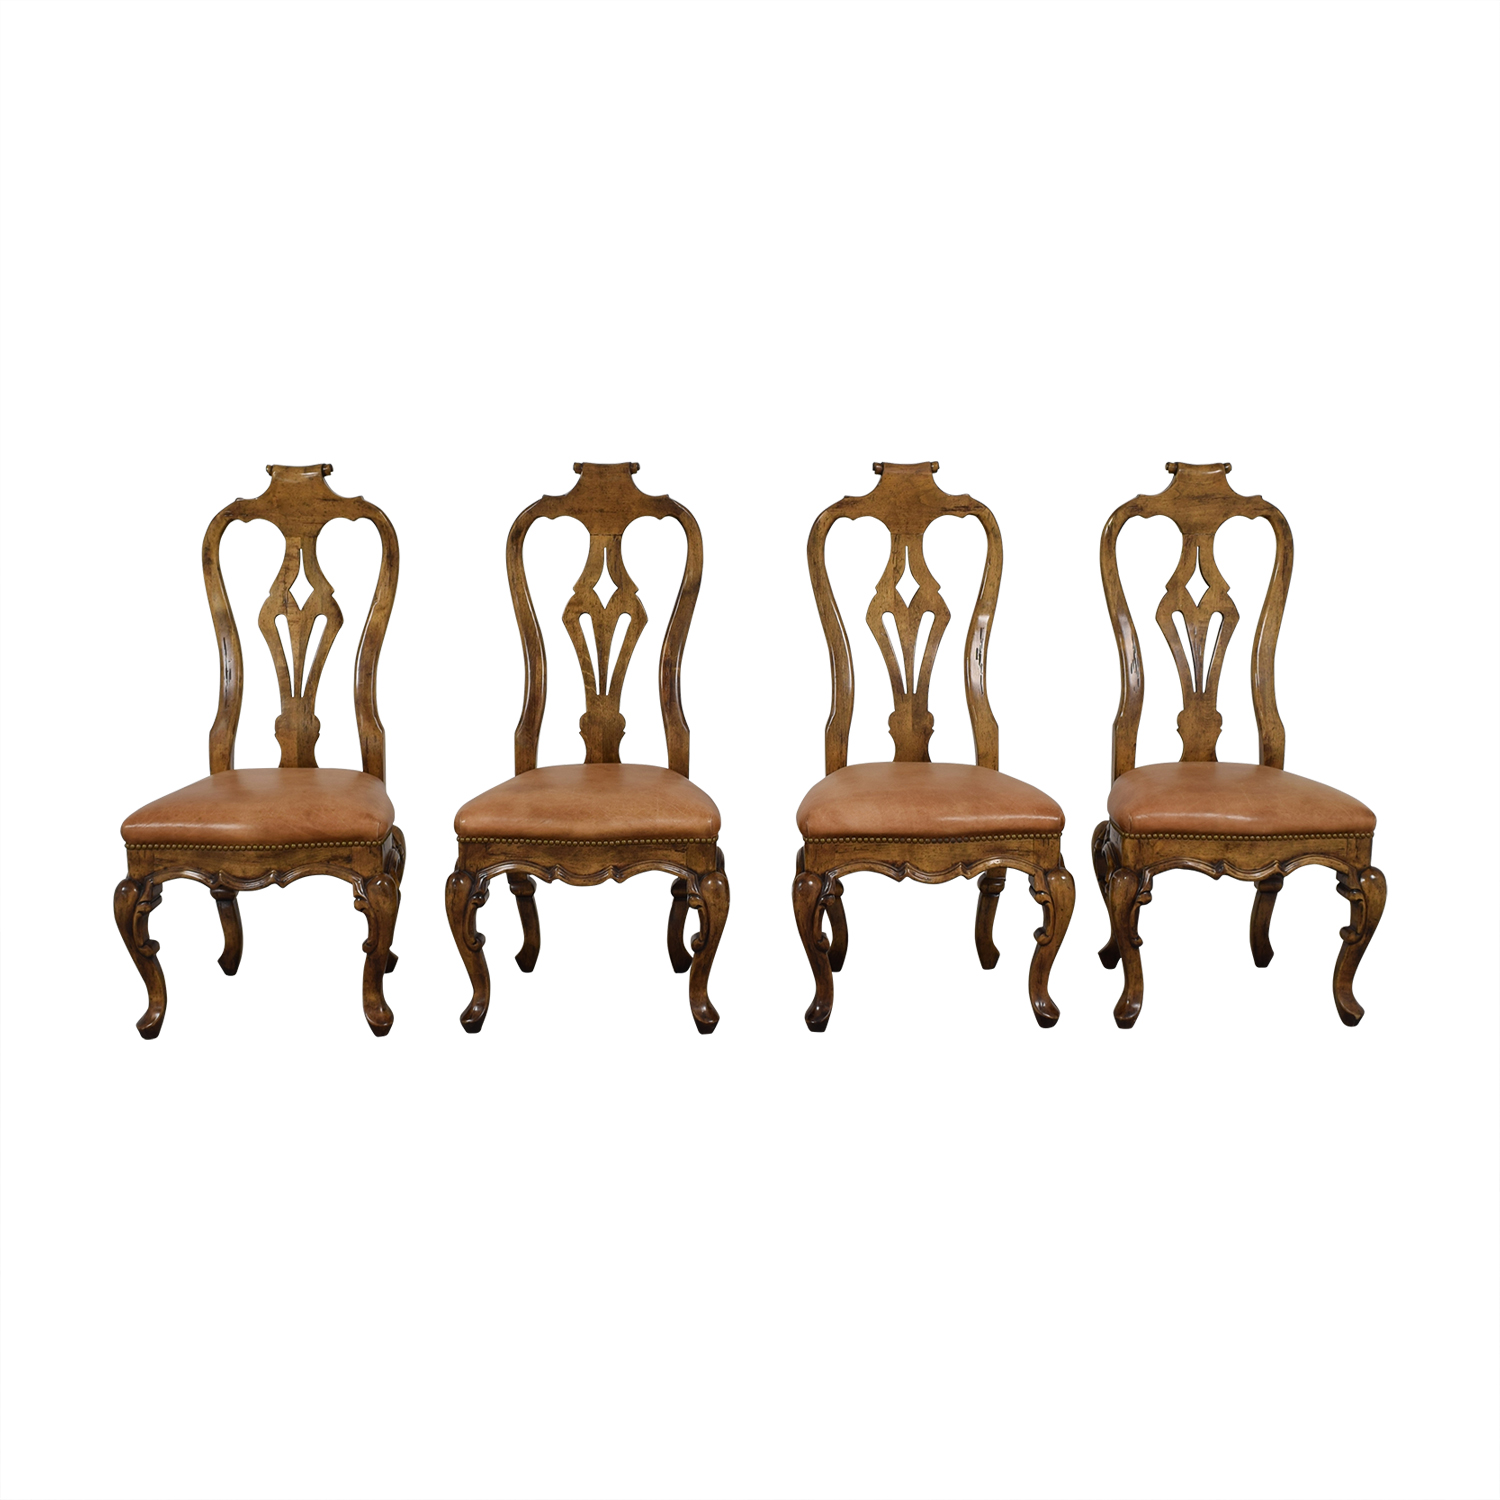 Bausman and Co Bausman and Co Portuguese Queen Anne Tan Dining Chairs second hand